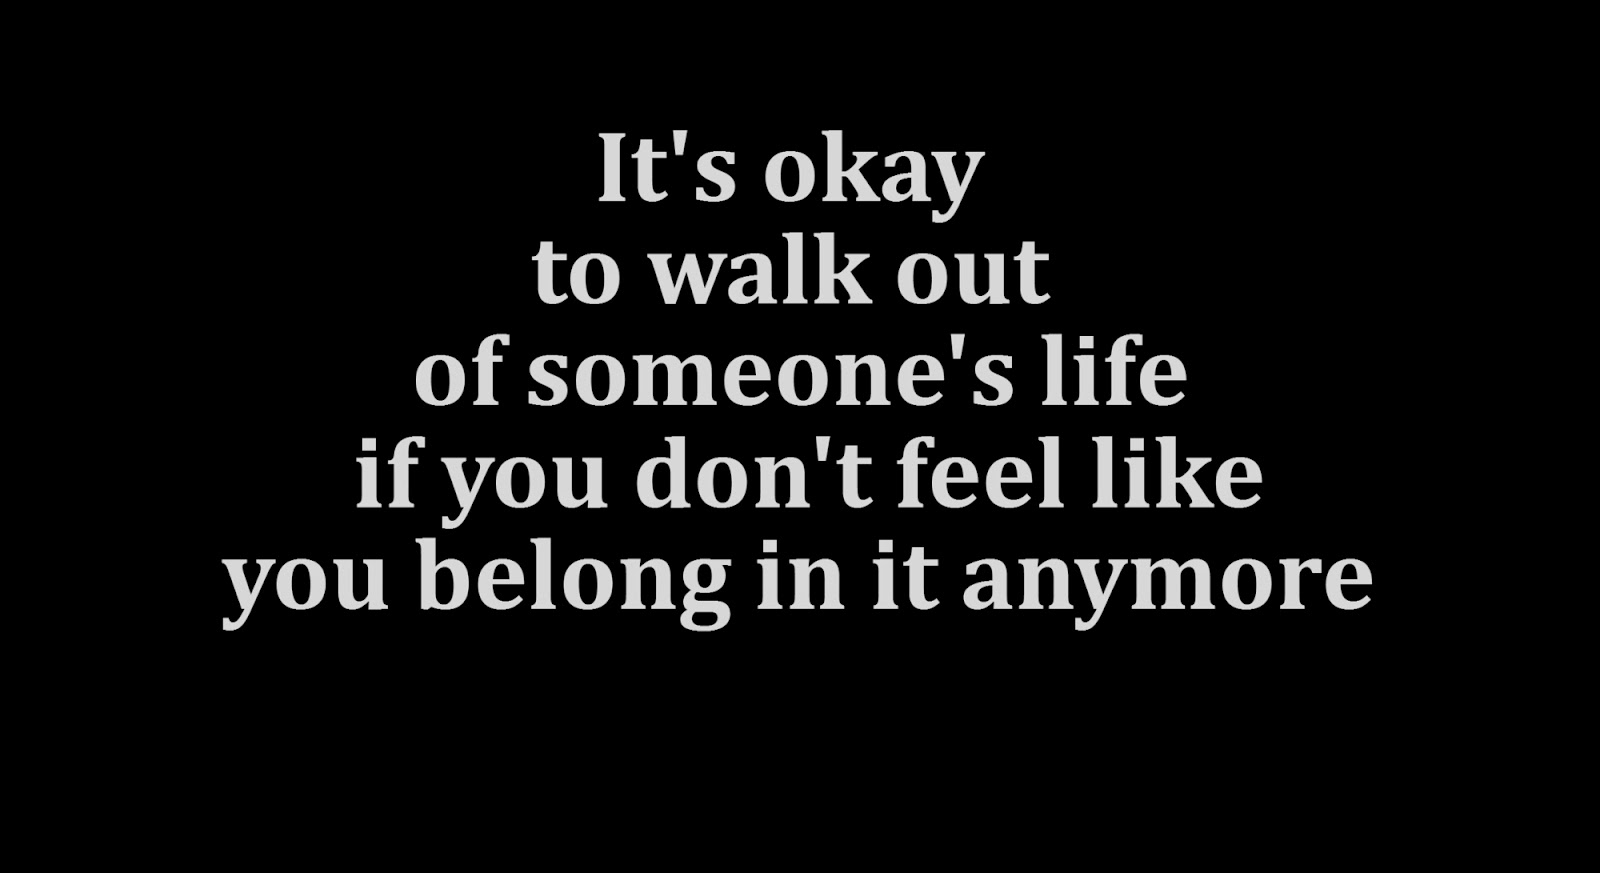 It's okay to walk out of someone's life if you don't feel like you belong in it anymore